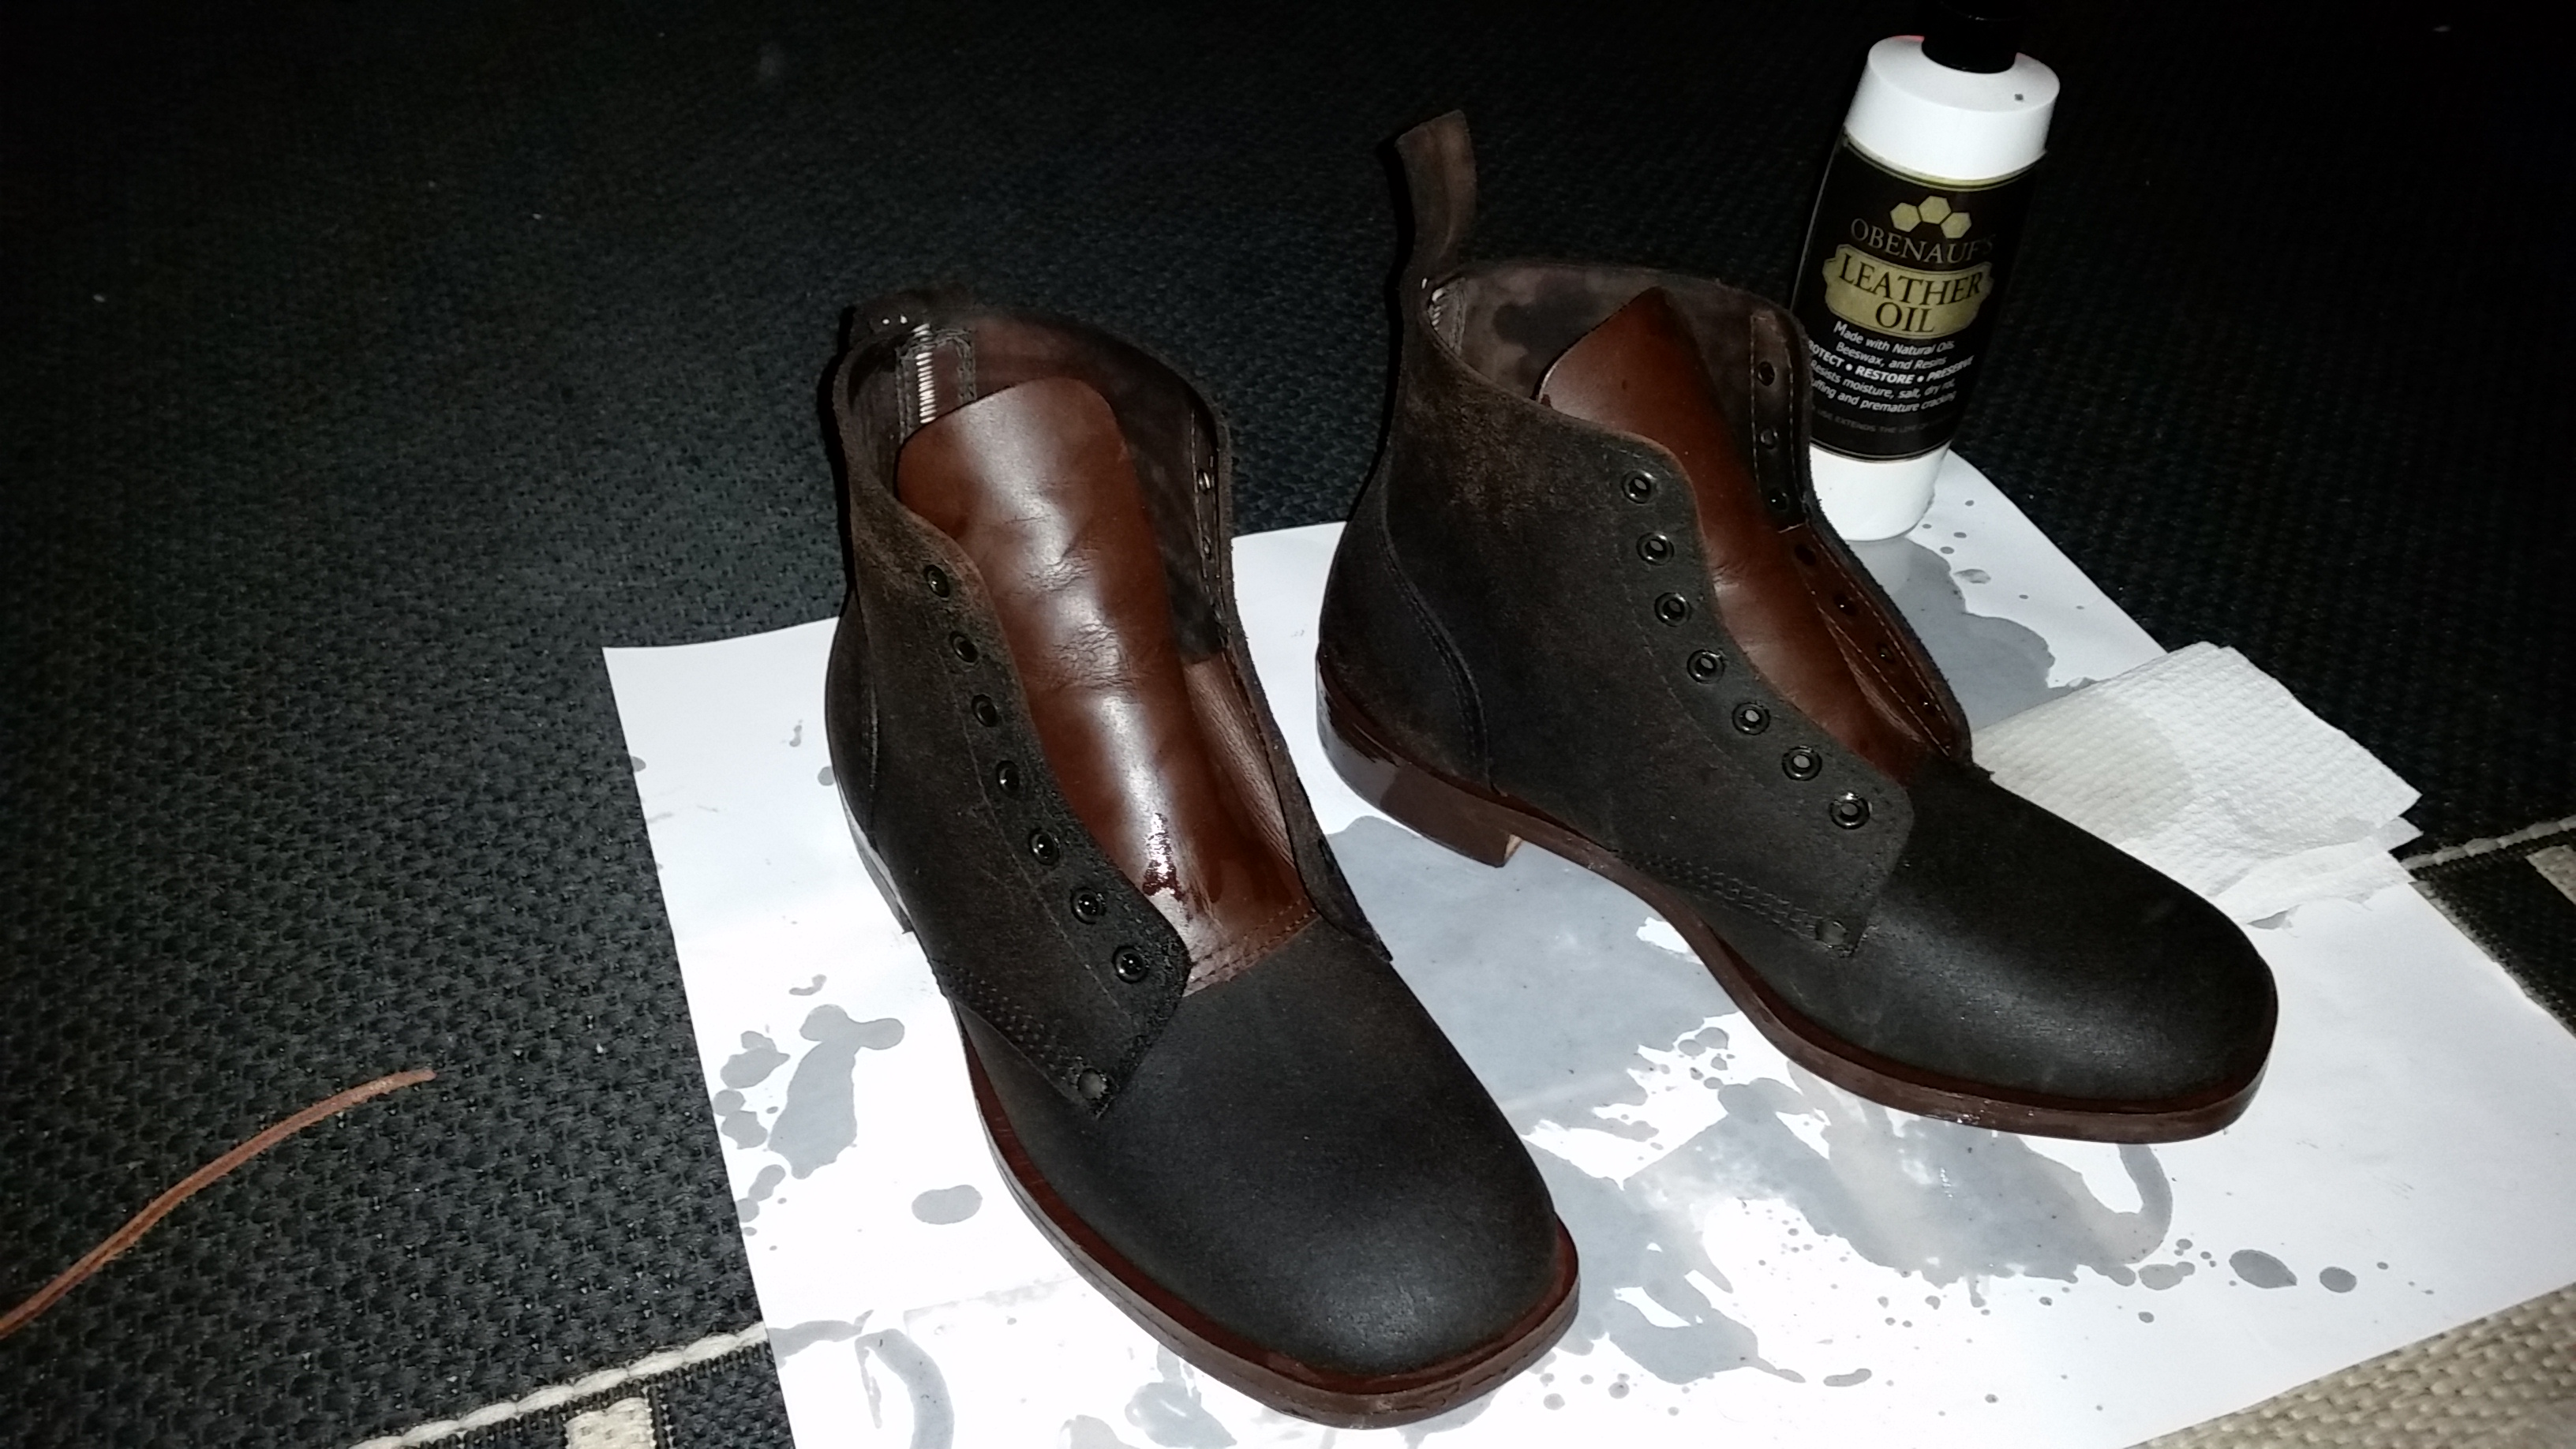 nh10222's photos in William Lennon boots